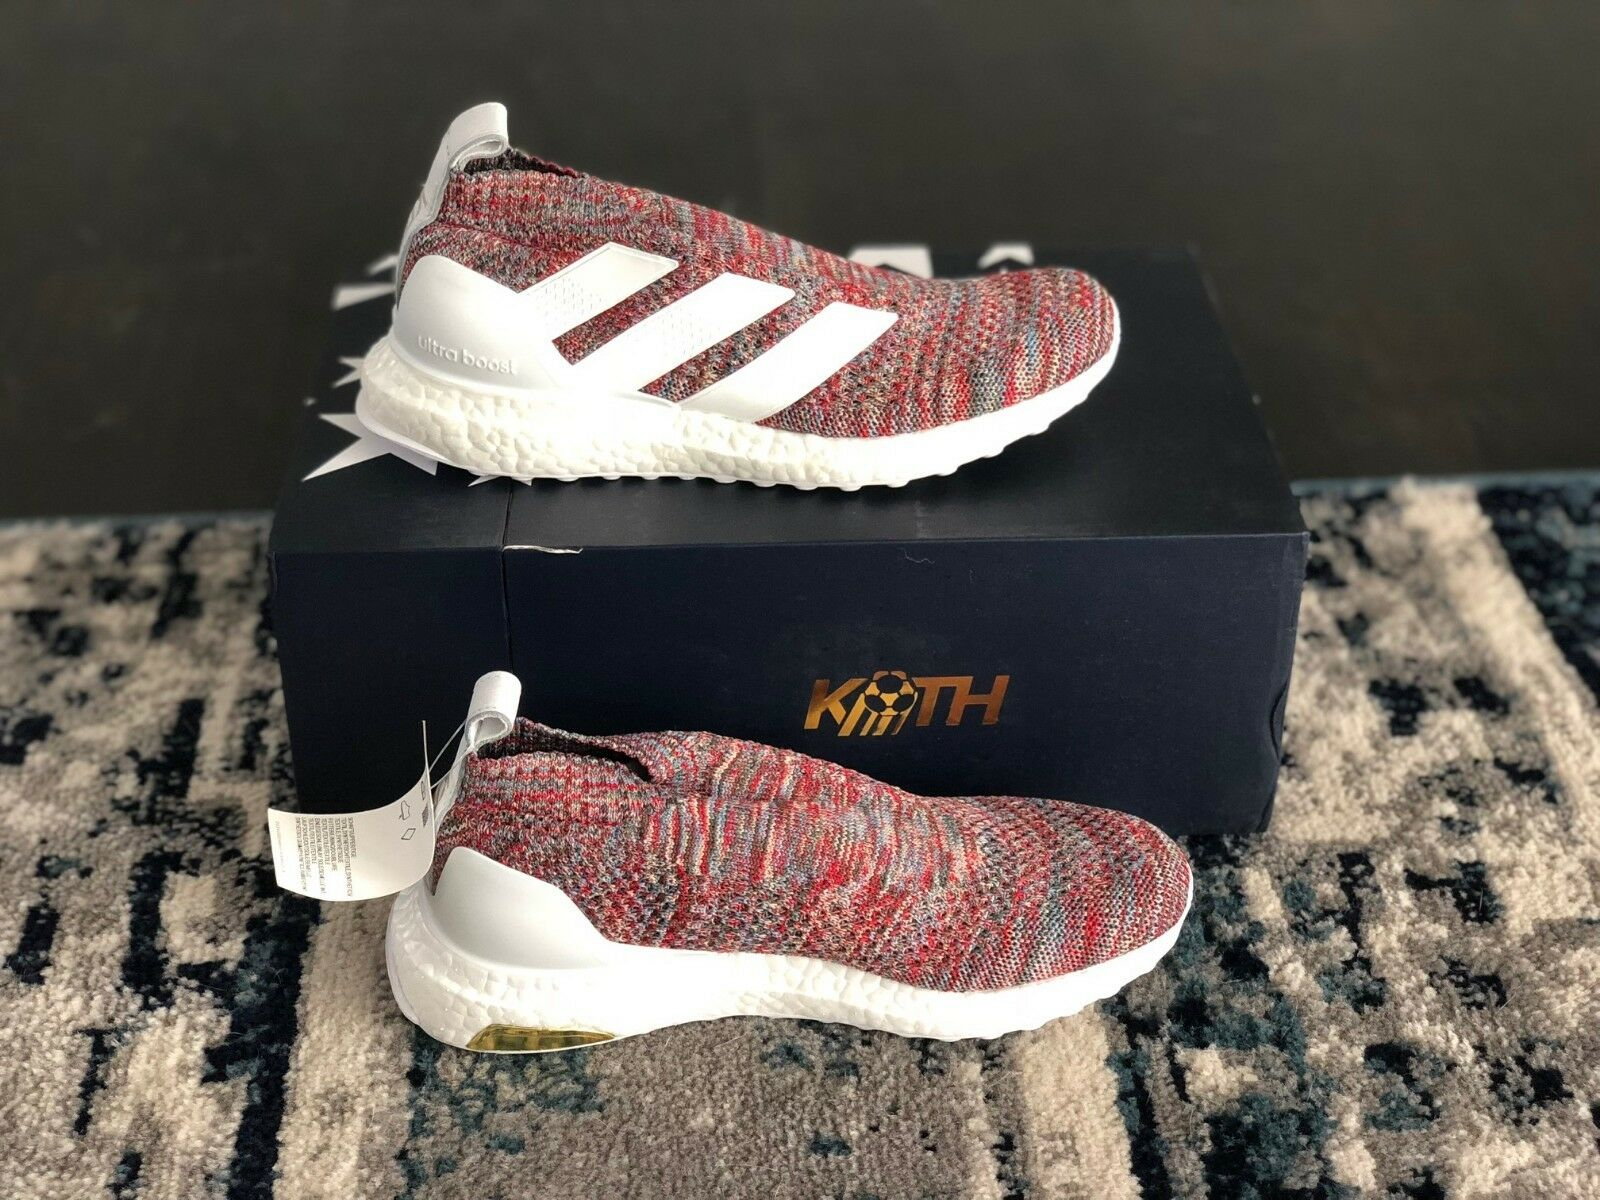 ADIDAS X KITH COPA ACE 16+ PURECONTROL MULTICOLOR ASPEN ULTRA BOOST DS SZ 8